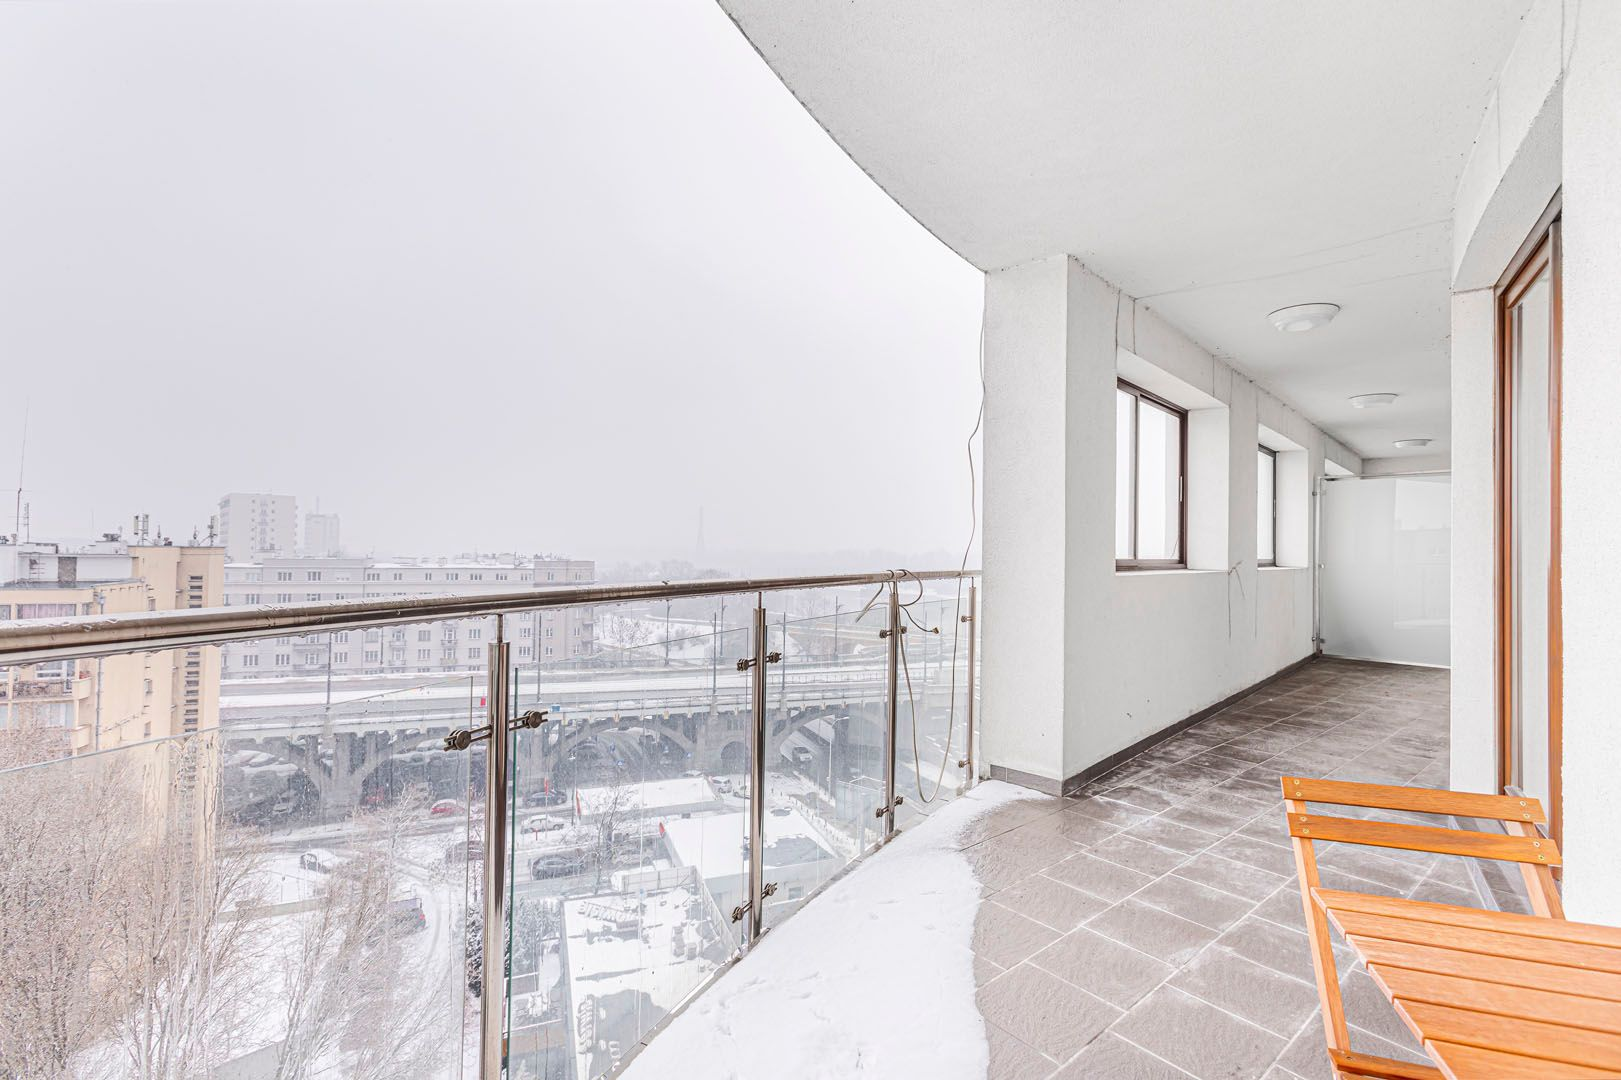 1 Bedroom - Small apartment to rent in Warsaw UPR-A-076-2